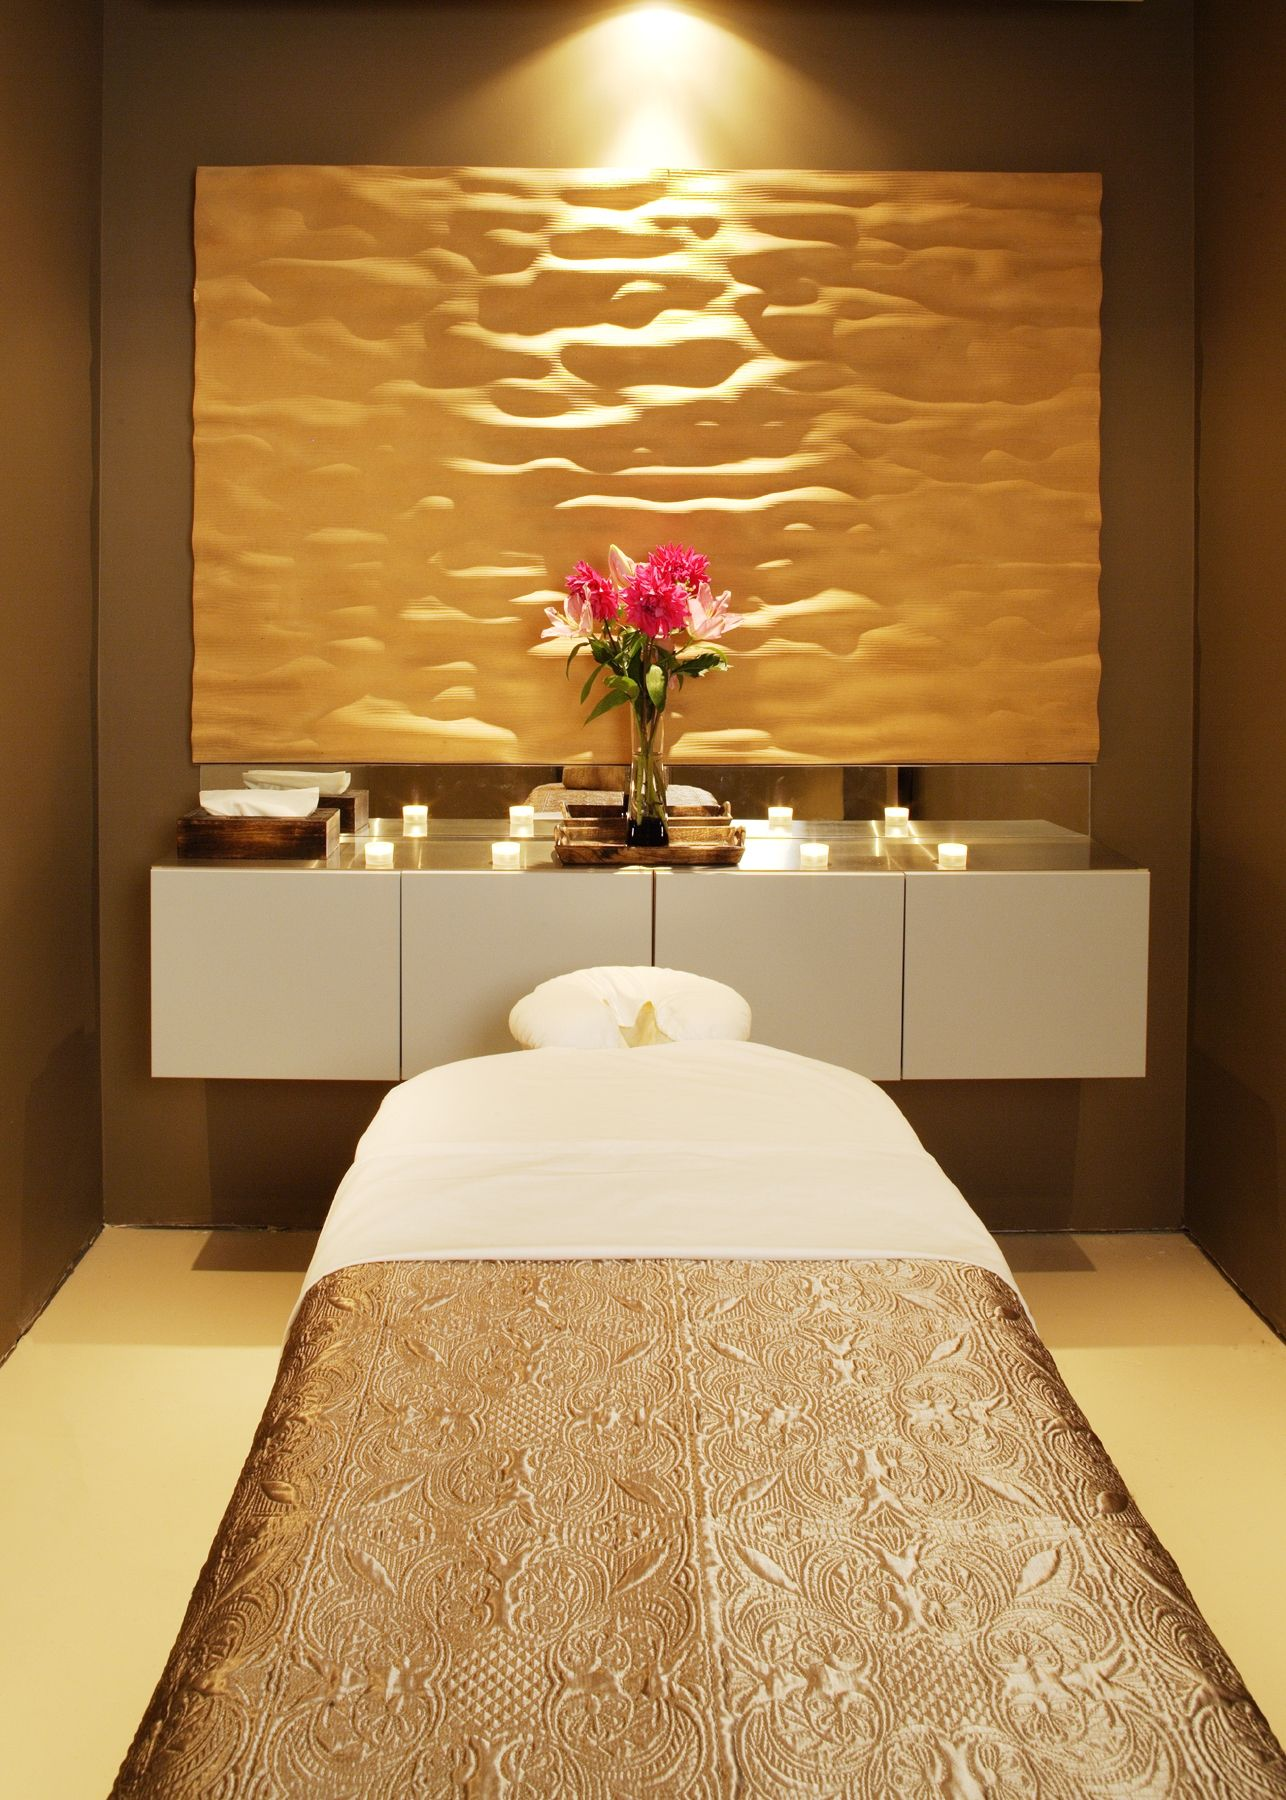 Massage Therapy Room Design Ideas: Hammam Spa Toronto. 2012 SpAWARDS Winner! (With Images